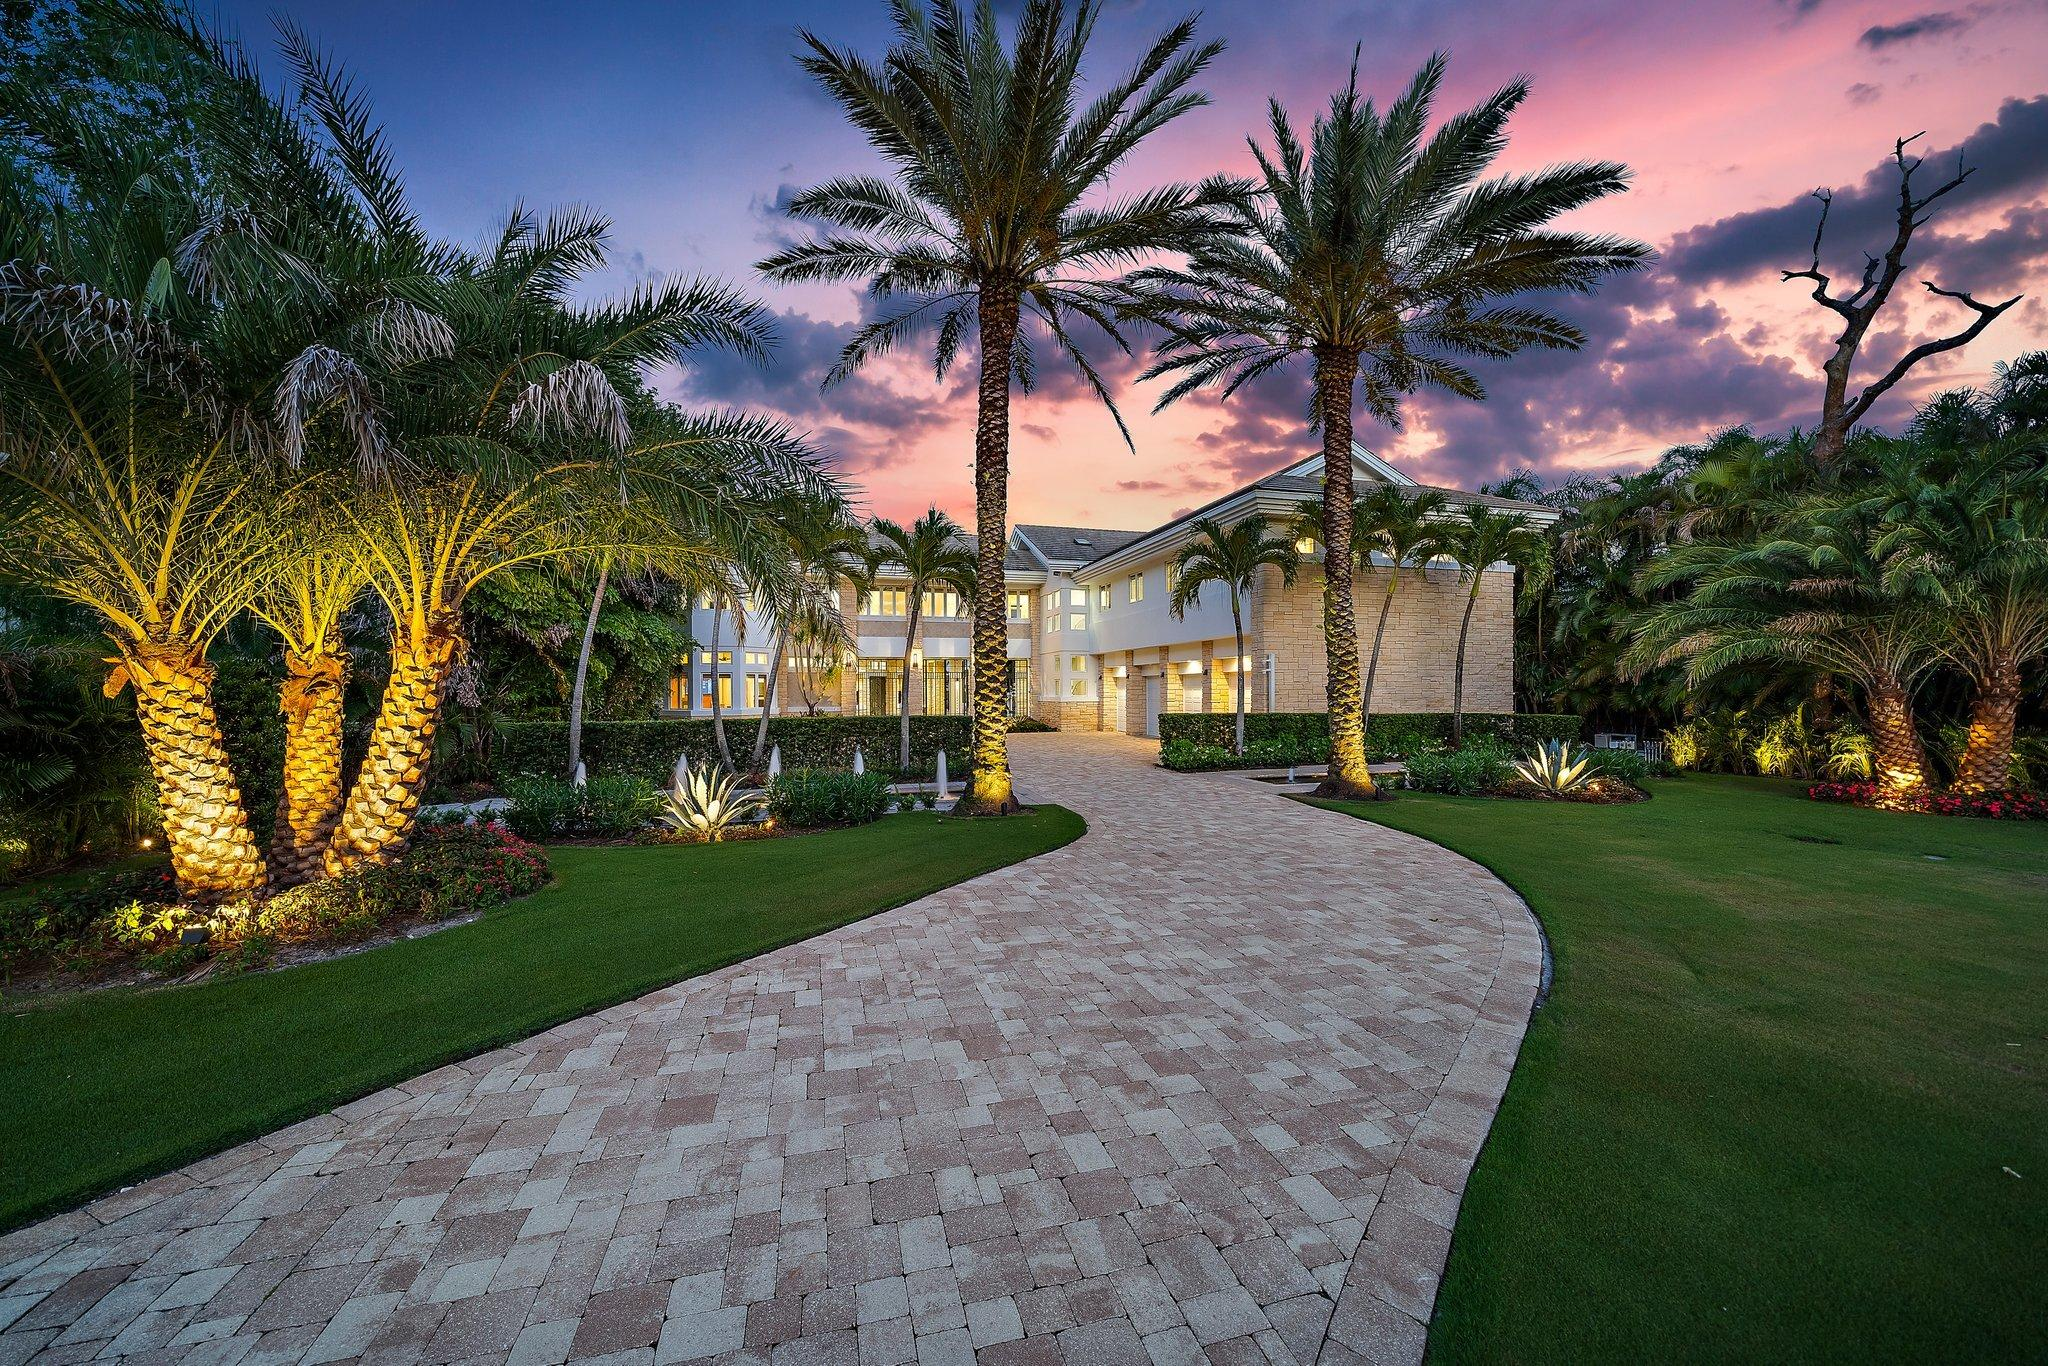 Stunning + palatial  modern Intracoastal home with over 9,300 interior SF and 106' of direct deepwater frontage!  Newly renovated to blend aesthetic simplicity w/ state of the art functionality this home offers a new approach to healthy living.  A private gate leads to this sprawling and lush 1.4 acre estate just minutes from the Jupiter inlet.  Organic design elements include marble + wood flooring, stone accent wall w/ fireplace and floor to ceiling windows (all premiere impact).  A 2 level living room welcomes you into this spacious home.  All rooms are grand in size, blending casual comfort + elegance.  Family room + kitchen w/ water views are the hub of this inviting home.  Owners suite offers resort luxury w/ spa style bath + massive closets.  Additional rooms include a huge home gym , a theater room, home office and a large pool cabana w/ kitchen.  Guest BR's are all grand in size and feature spa-like ensuite baths.   Entire upper floor enjoys a spacious outdoor lanai area with views of the pool and Intracoastal waterway, along with tropical breezes.   If laid back luxury is what you desire, this is the home for you.  From the enchanting (and private) manicured grounds to the incredible interior square footage and easy boating options, this Florida home has it all!  Beautifully located within minutes of best beaches, shopping, dining and golf venues, conveniently by the Palm Beach Gardens/Jupiter line.   Close to 3 major airports, Palm Beach Island... you will Love living here!